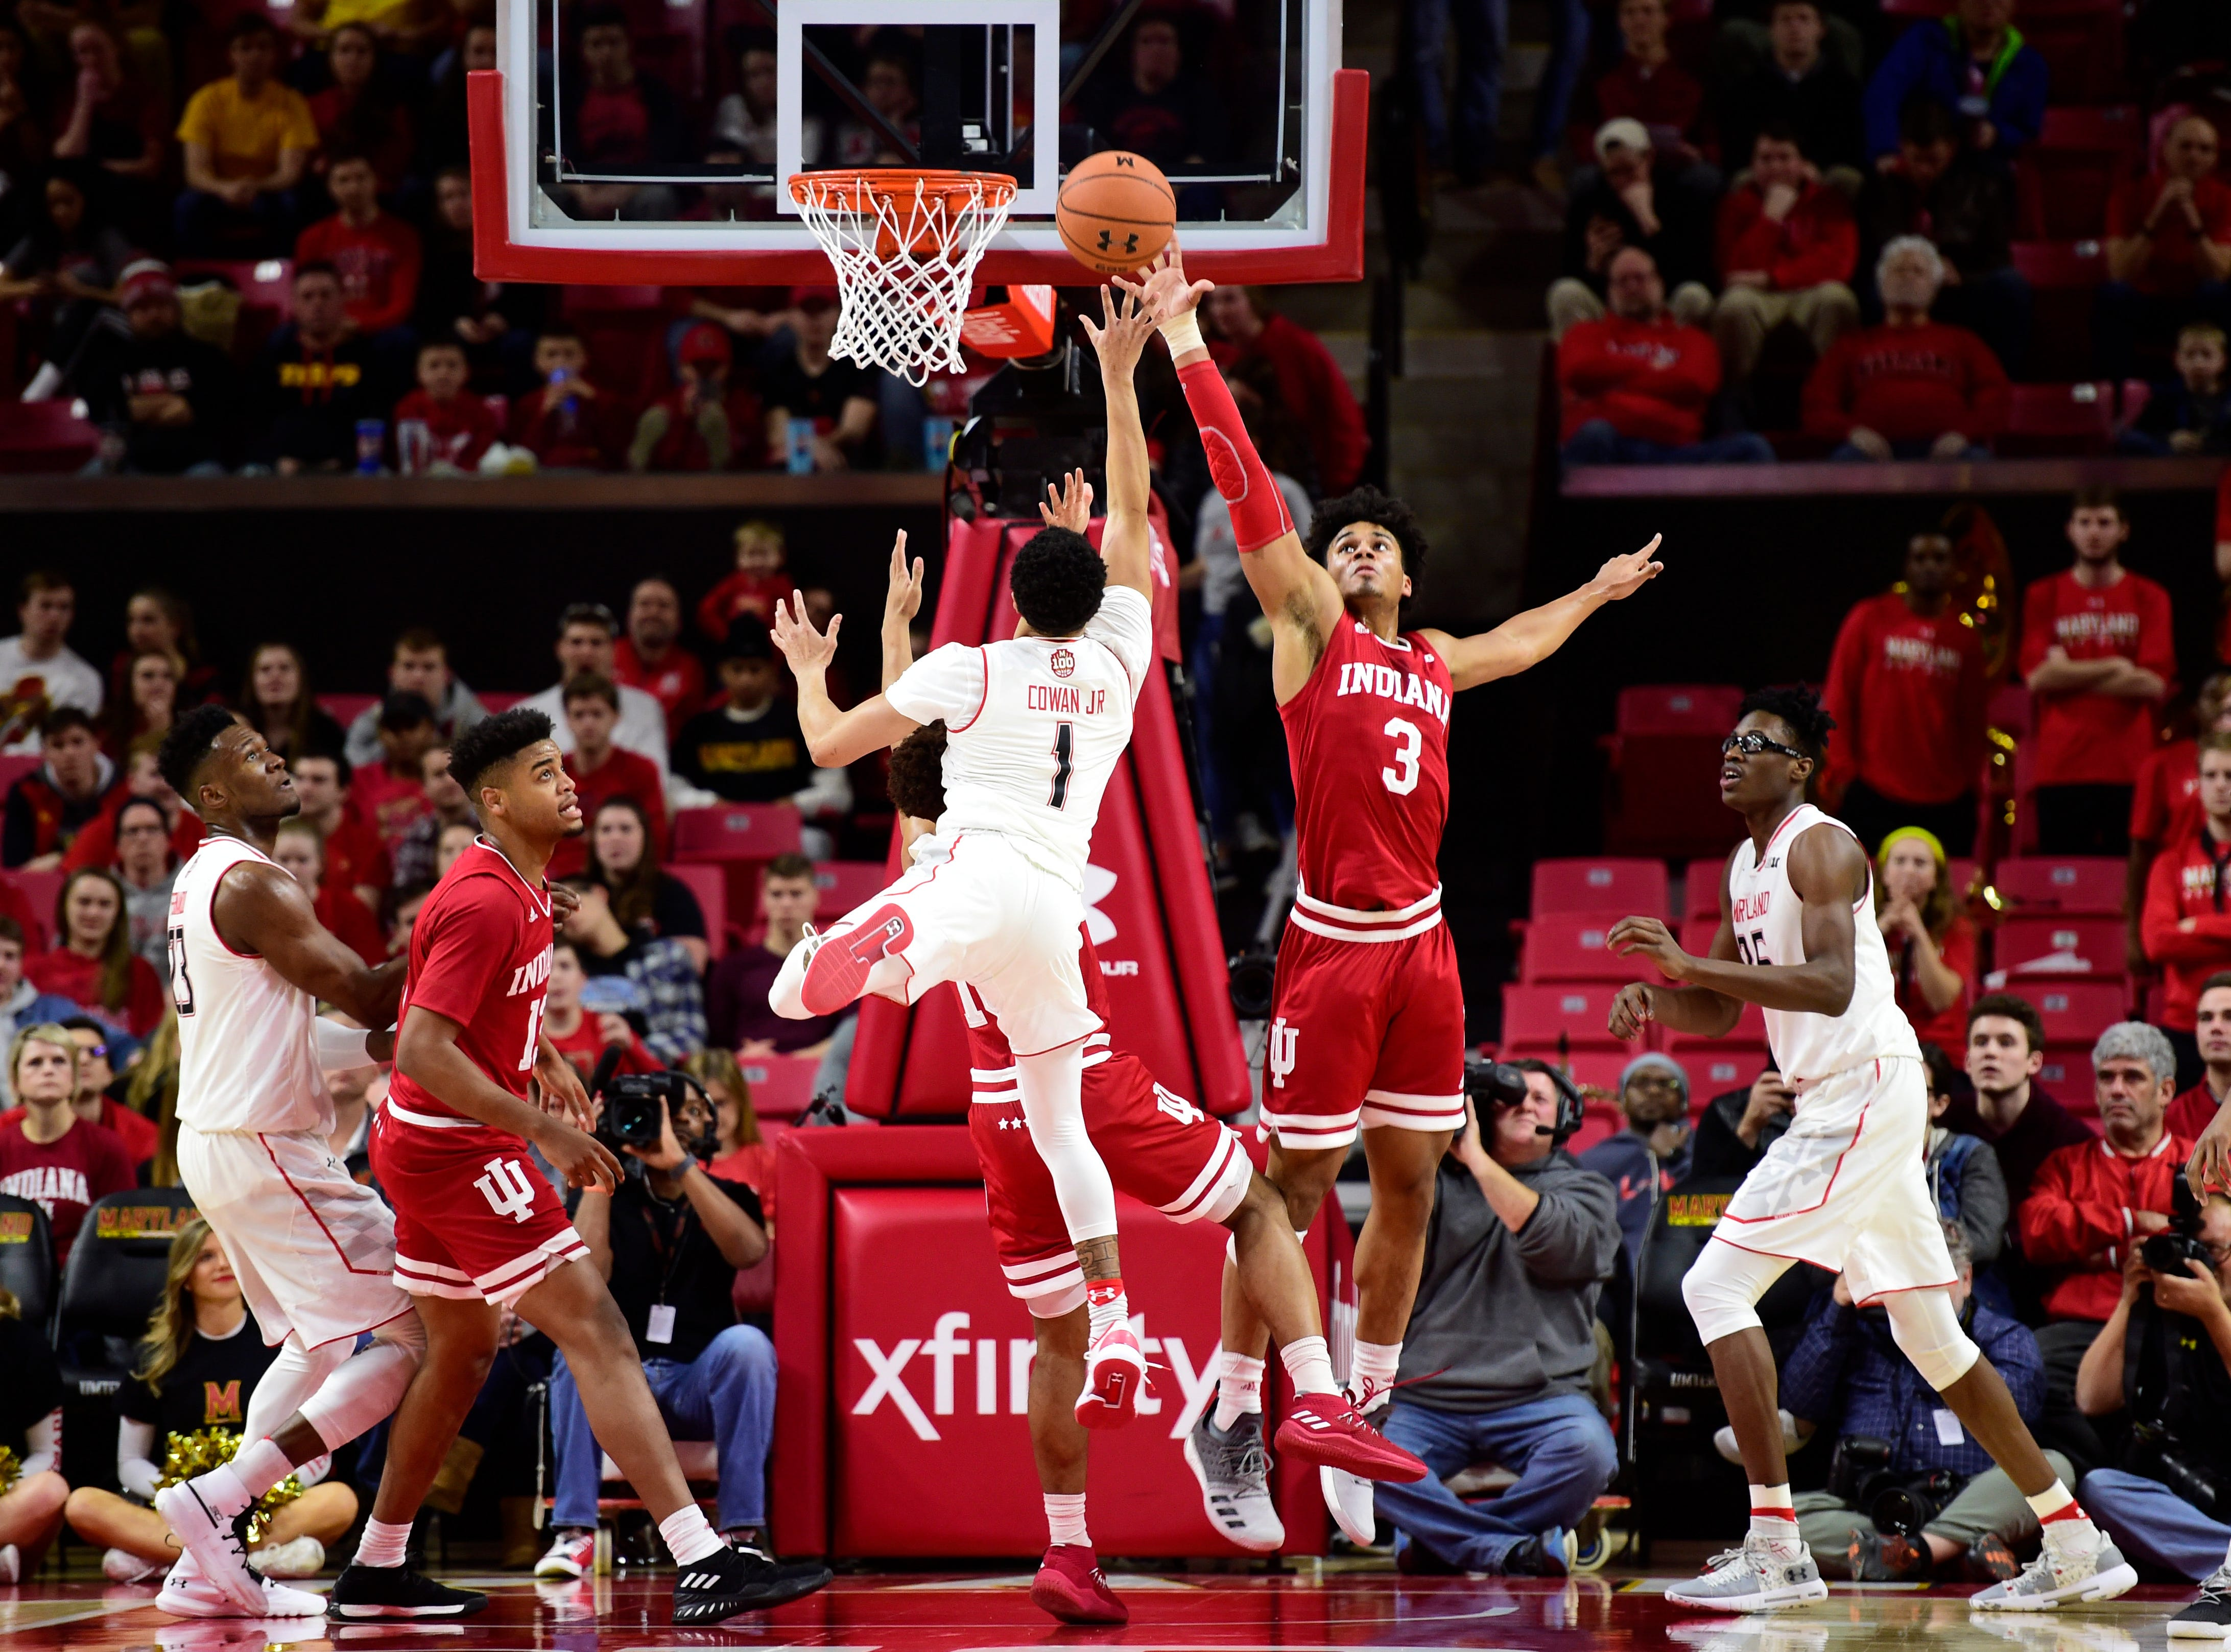 Jan 11, 2019; College Park, MD, USA;  Indiana Hoosiers forward Justin Smith (3) defends Maryland Terrapins guard Anthony Cowan Jr. (1) shot in the first half at XFINITY Center. Mandatory Credit: Tommy Gilligan-USA TODAY Sports